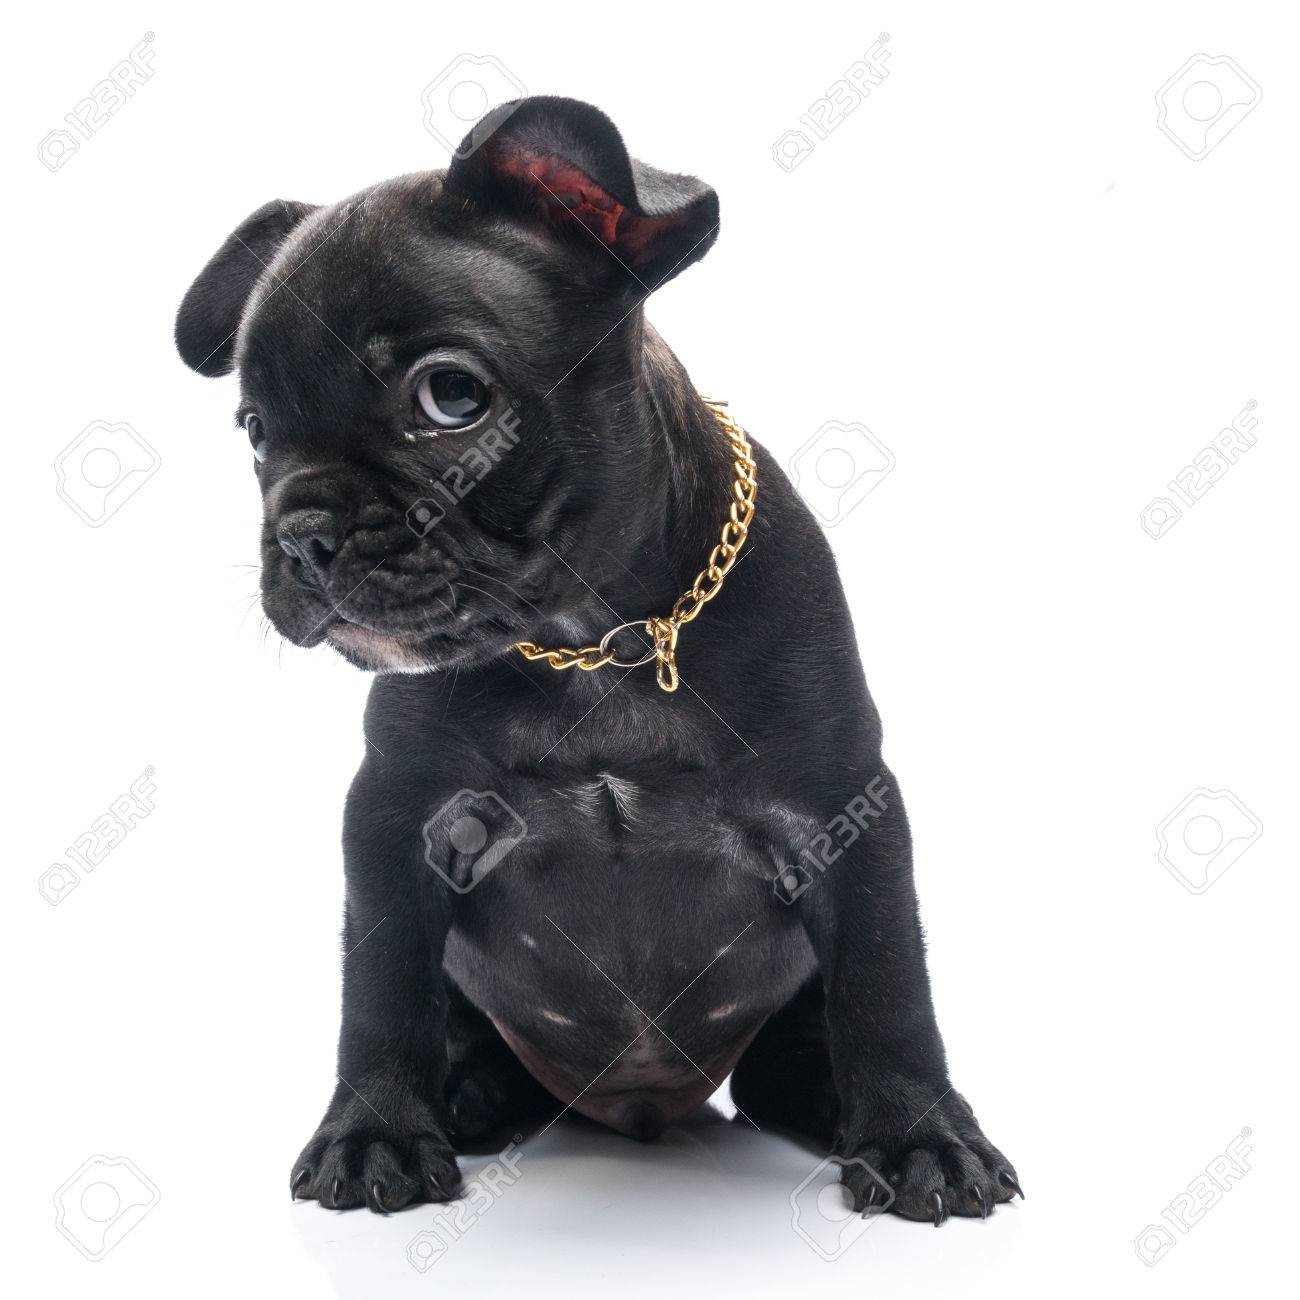 Black Brindle French Bulldog Puppy Stock Photo Picture And Royalty